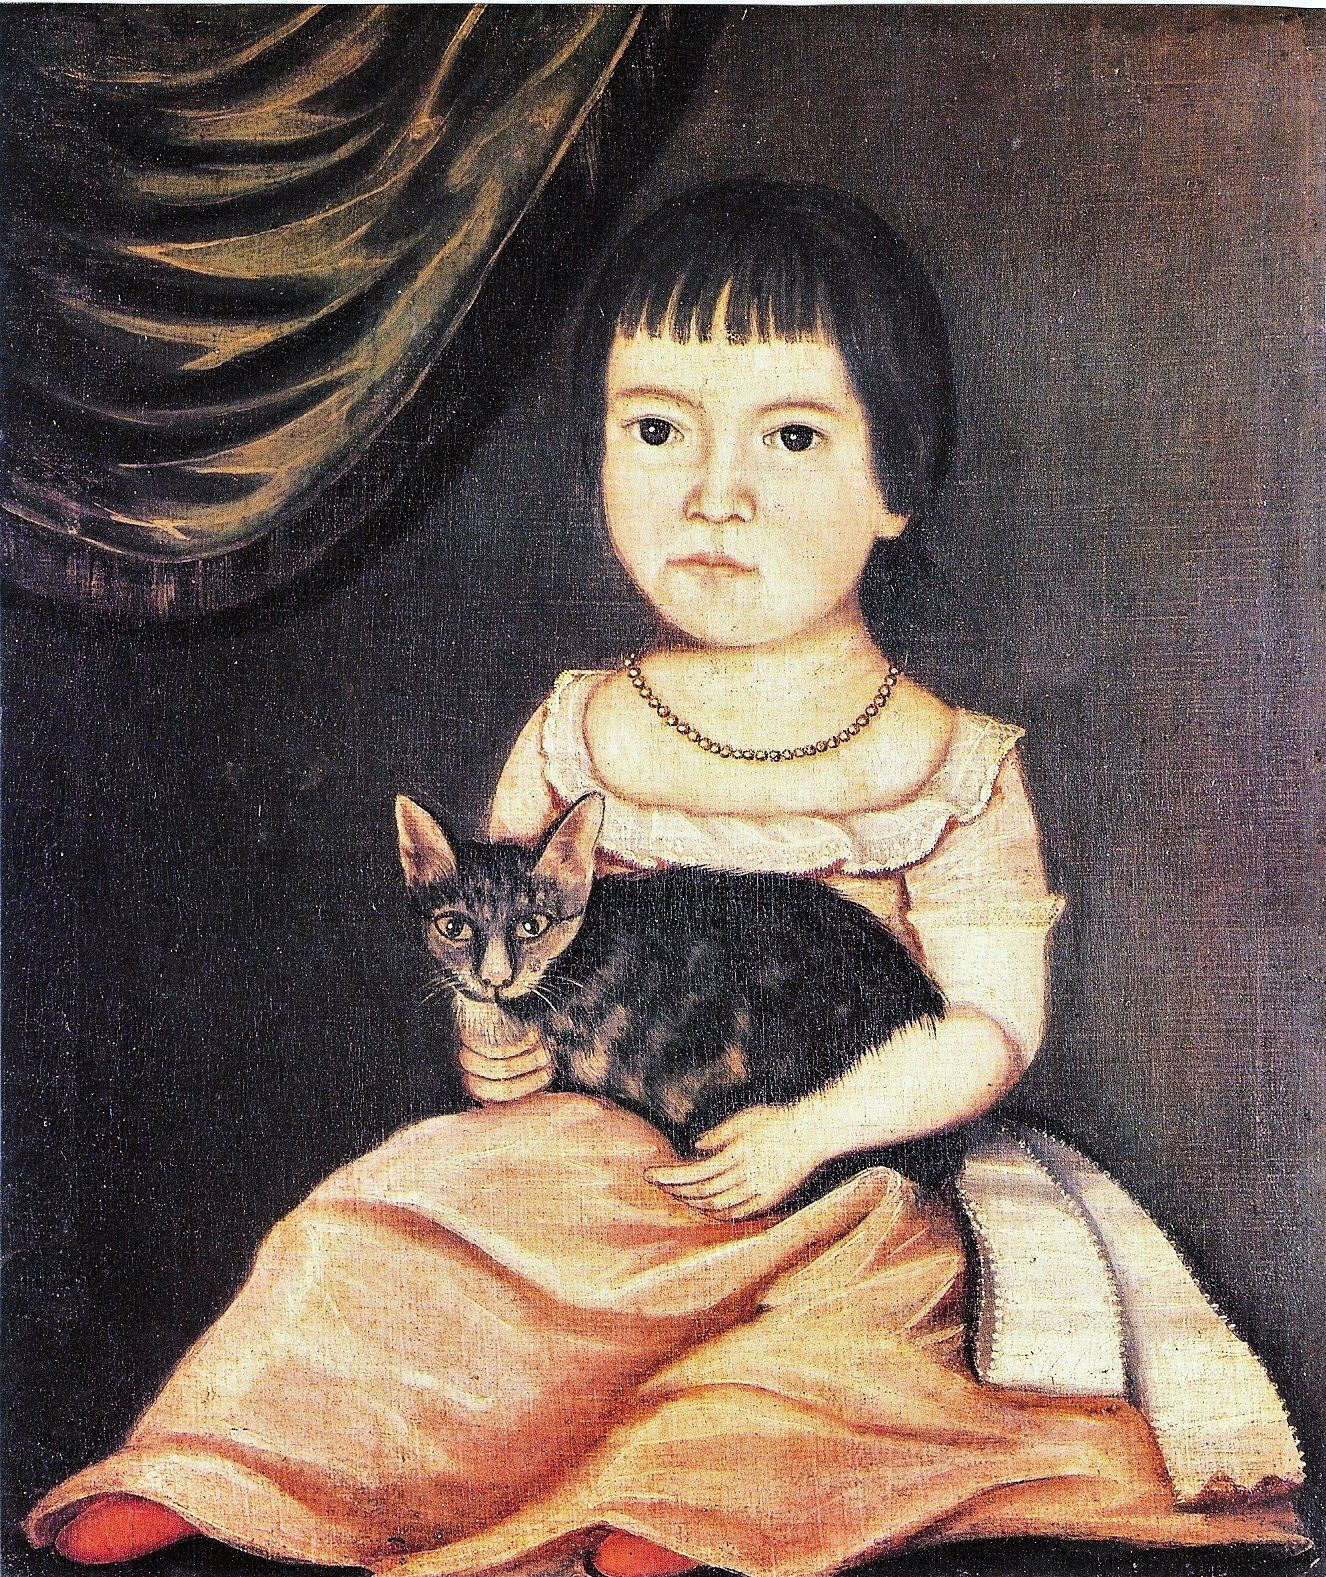 The Beardsley Limner (American painter, active 1785-1805 possibly Sarah Bushnell Perkins 1771-1831) Child Posing with Cat 1790s